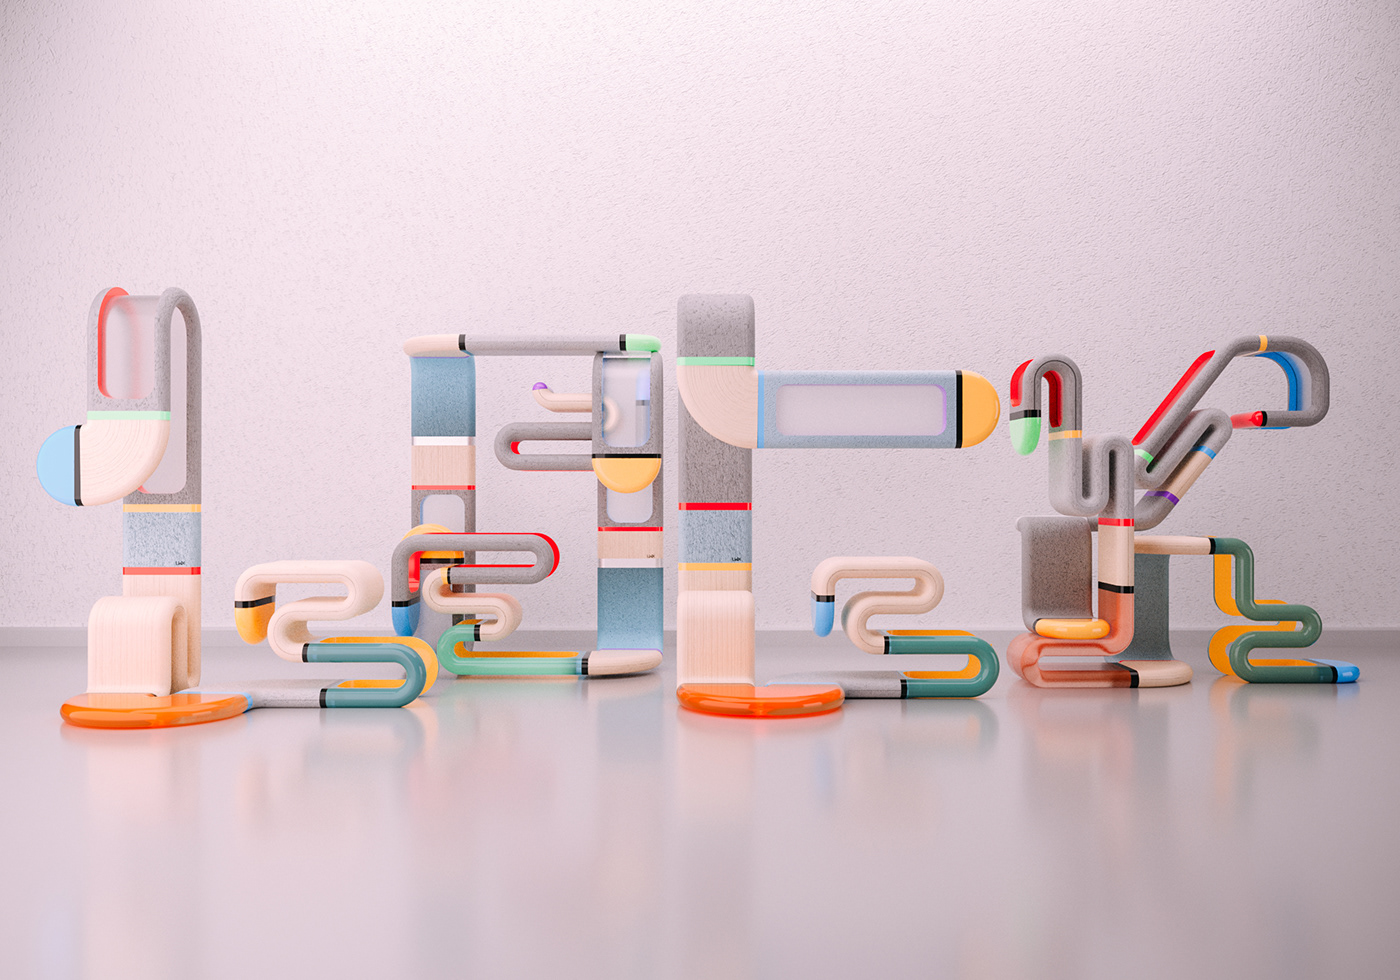 3DType,36daysoftype,letters,words,Modernart,design,poster,handdrawn,Playful,peaceful